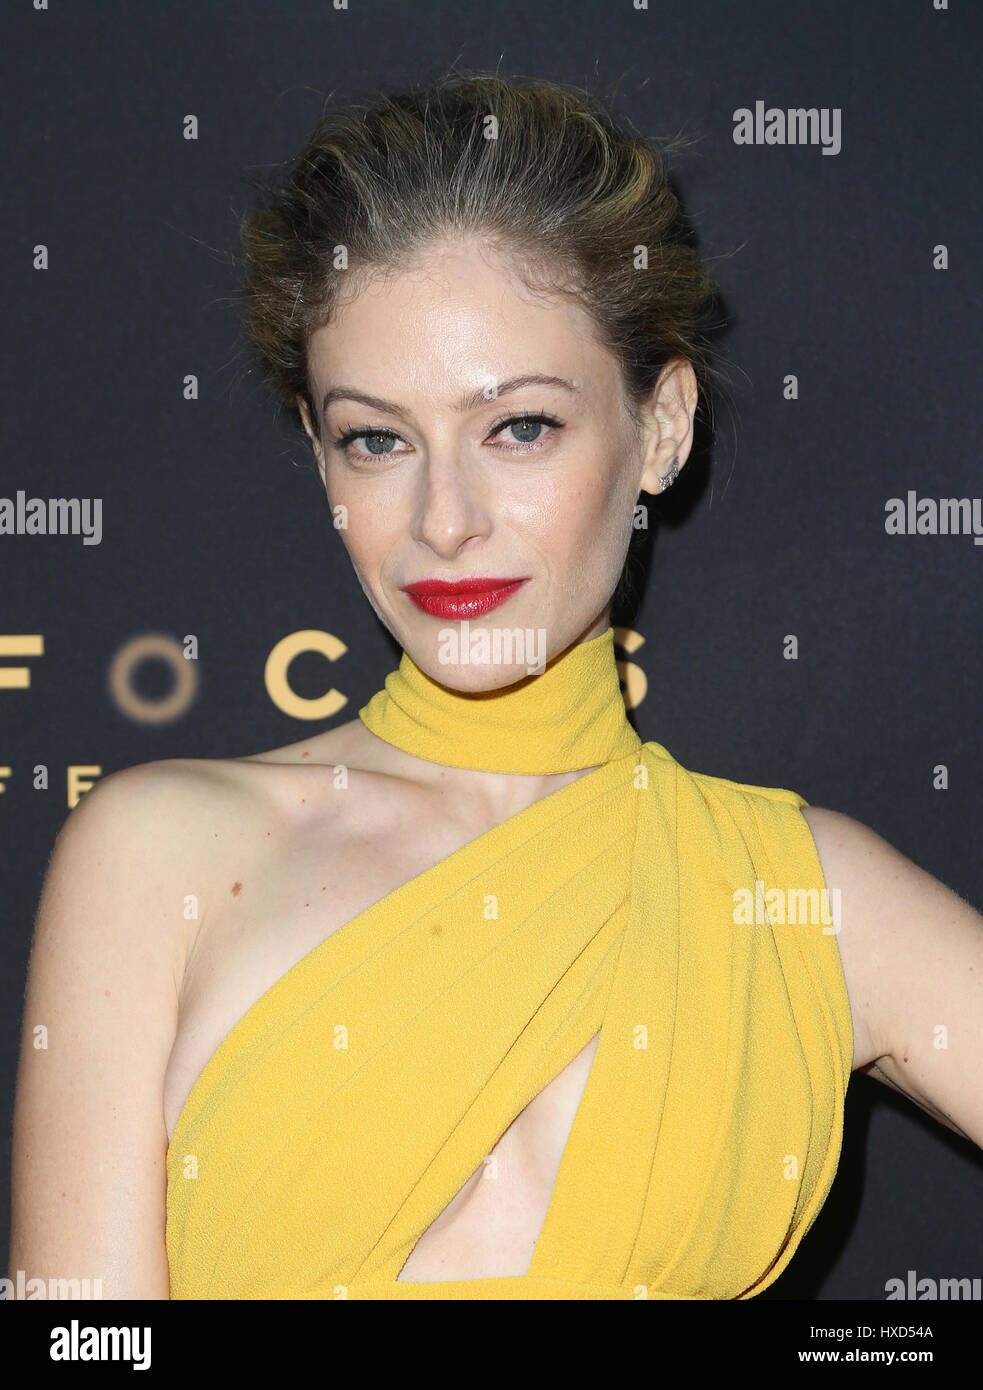 Hollywood, Ca. 27th Mar, 2017. Efrat Dor, At The Premiere Of Focus Features' 'The Zookeeper's Wife' - Stock Image